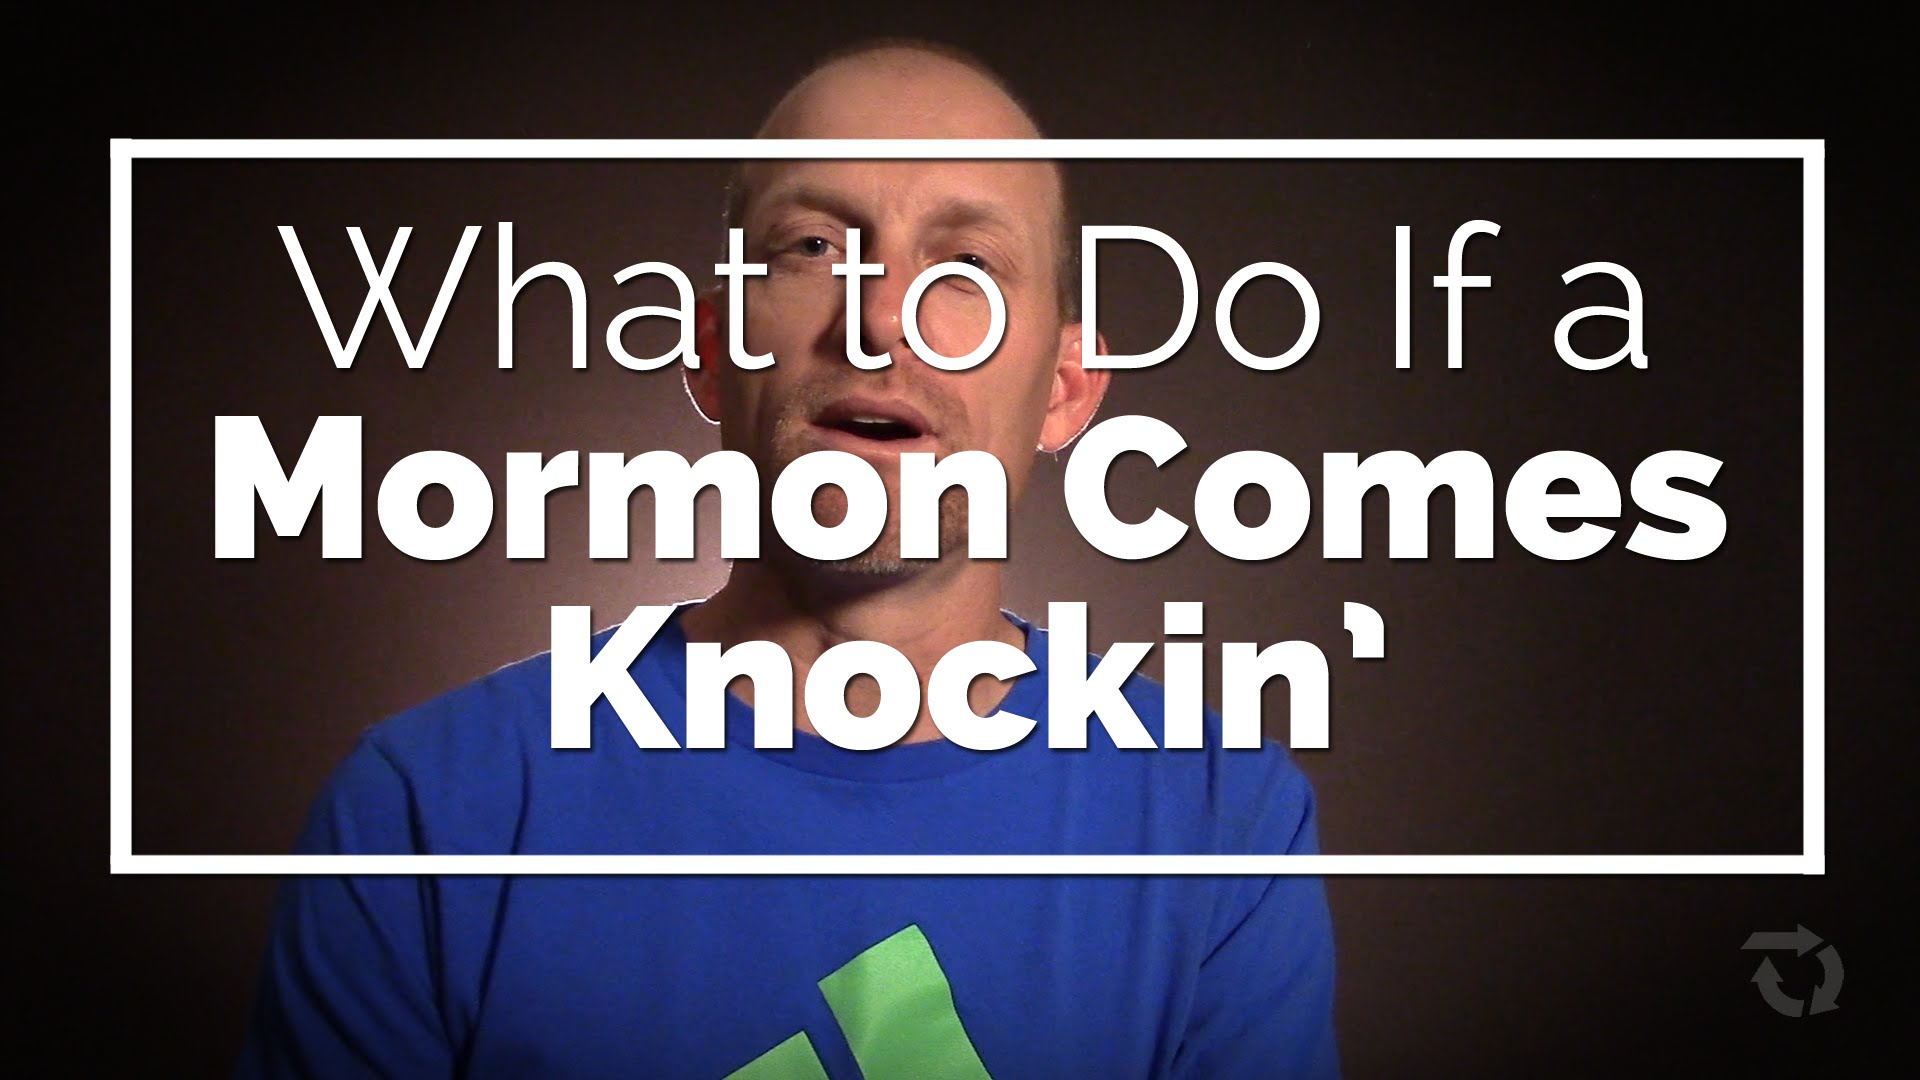 What to Do if a Mormon Comes Knockin'